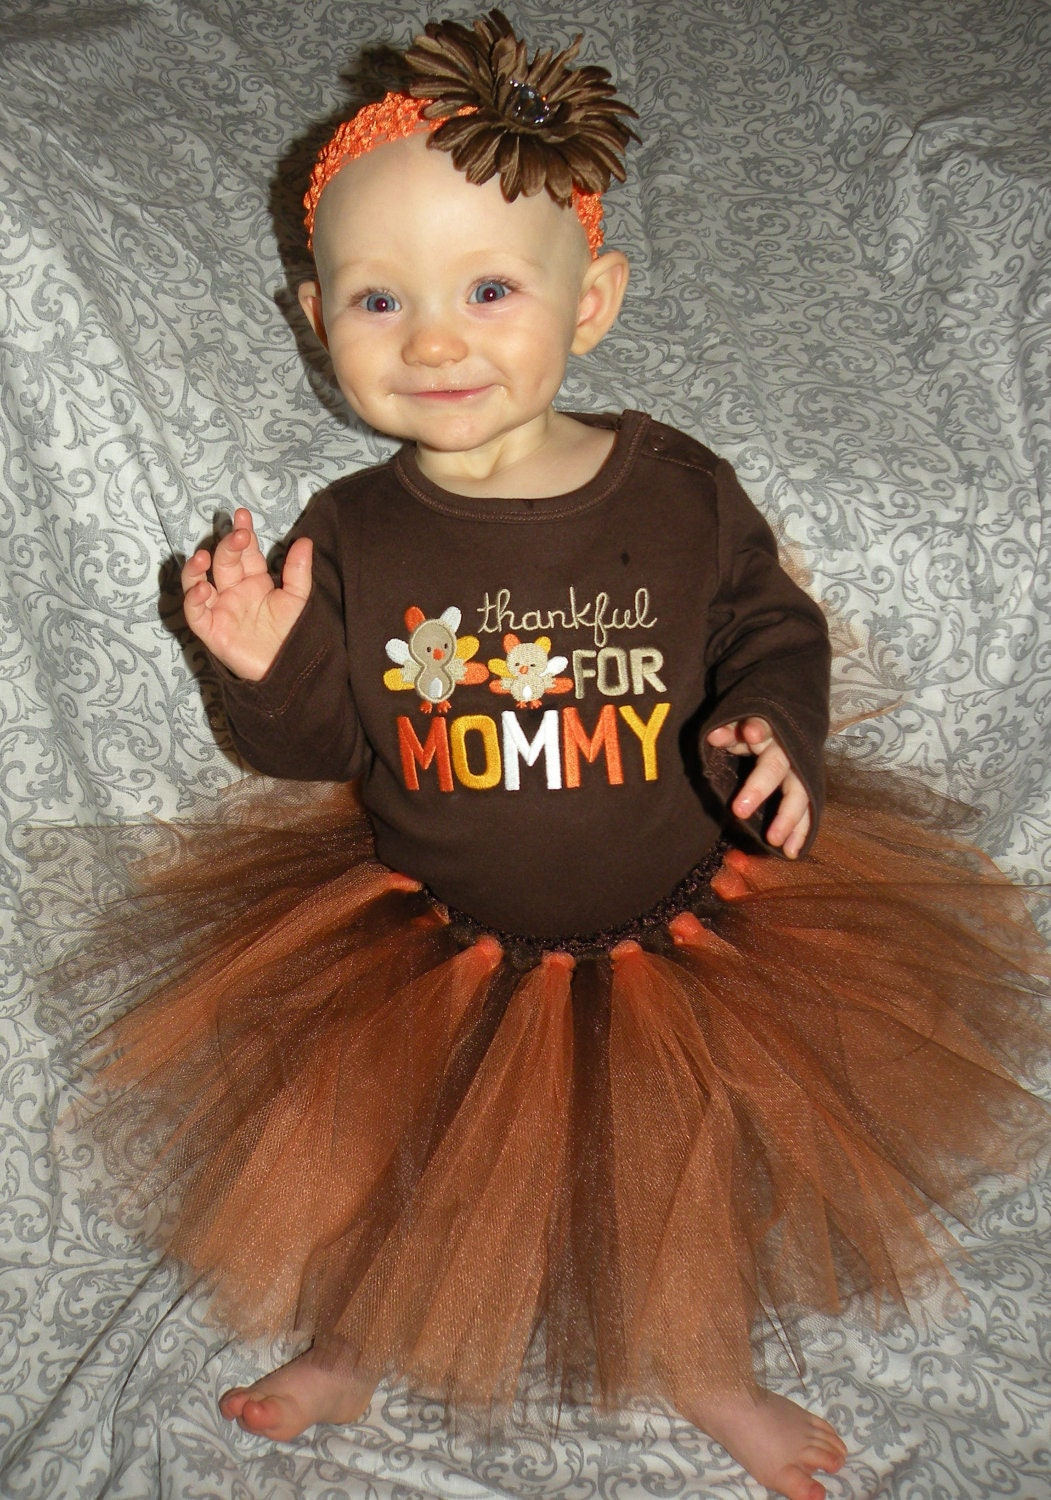 Find great deals on eBay for Baby Thanksgiving Outfit in Baby Girls' Outfits and Sets (Newborn-5T). Shop with confidence.